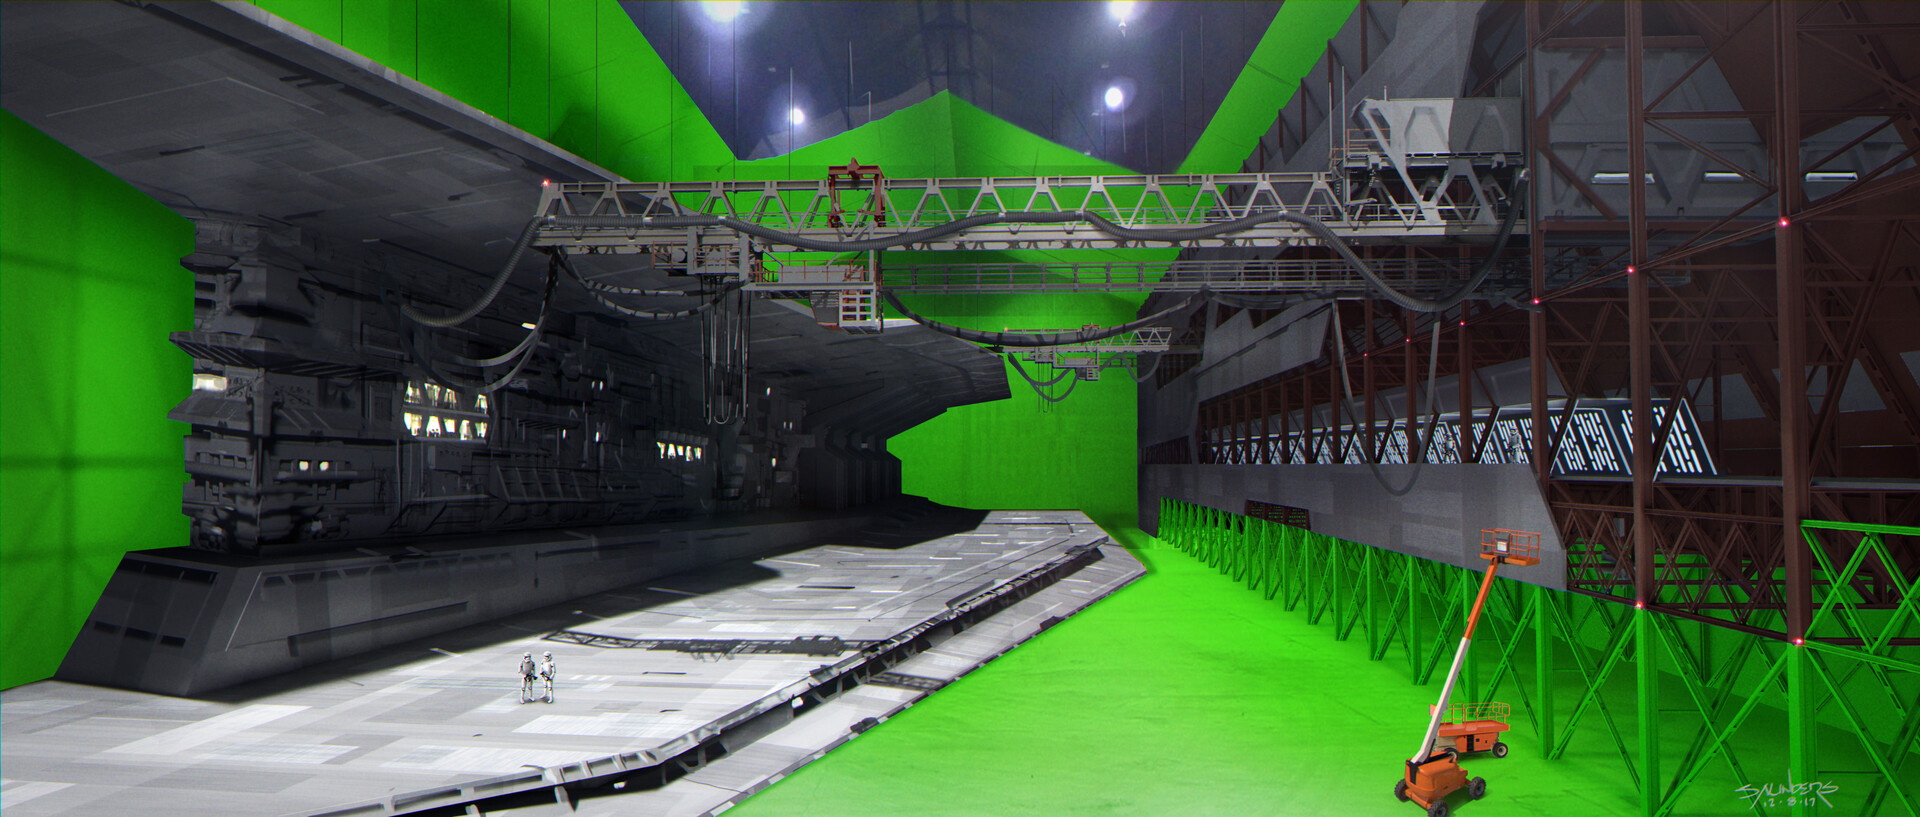 Once again the same shot rendered to preview the set at Cardington. Look at the scale of Stormtroopers for an idea just how big this stage is!!